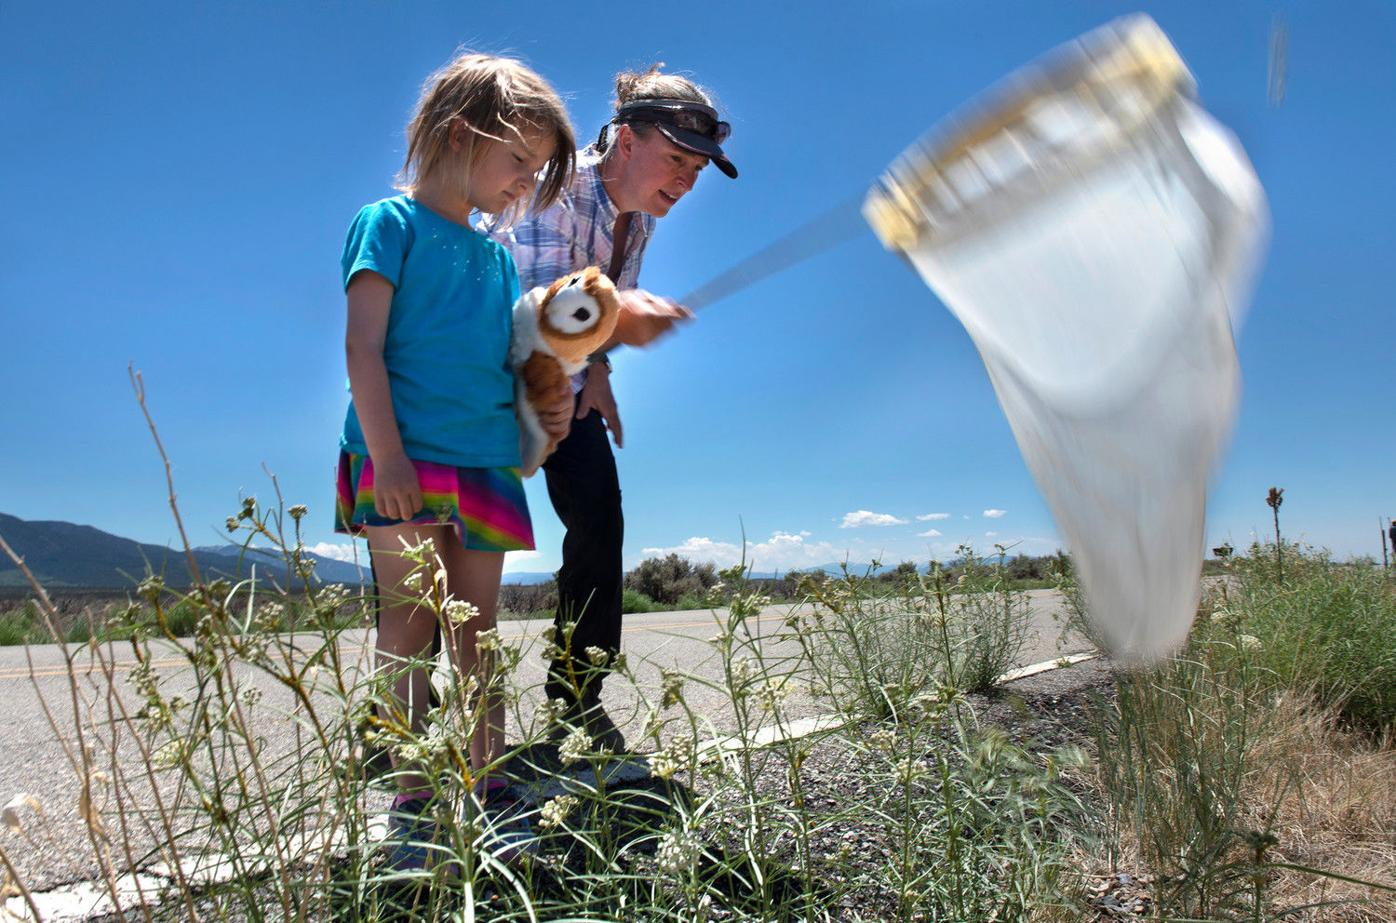 Hunting for wild bees to understand the drought